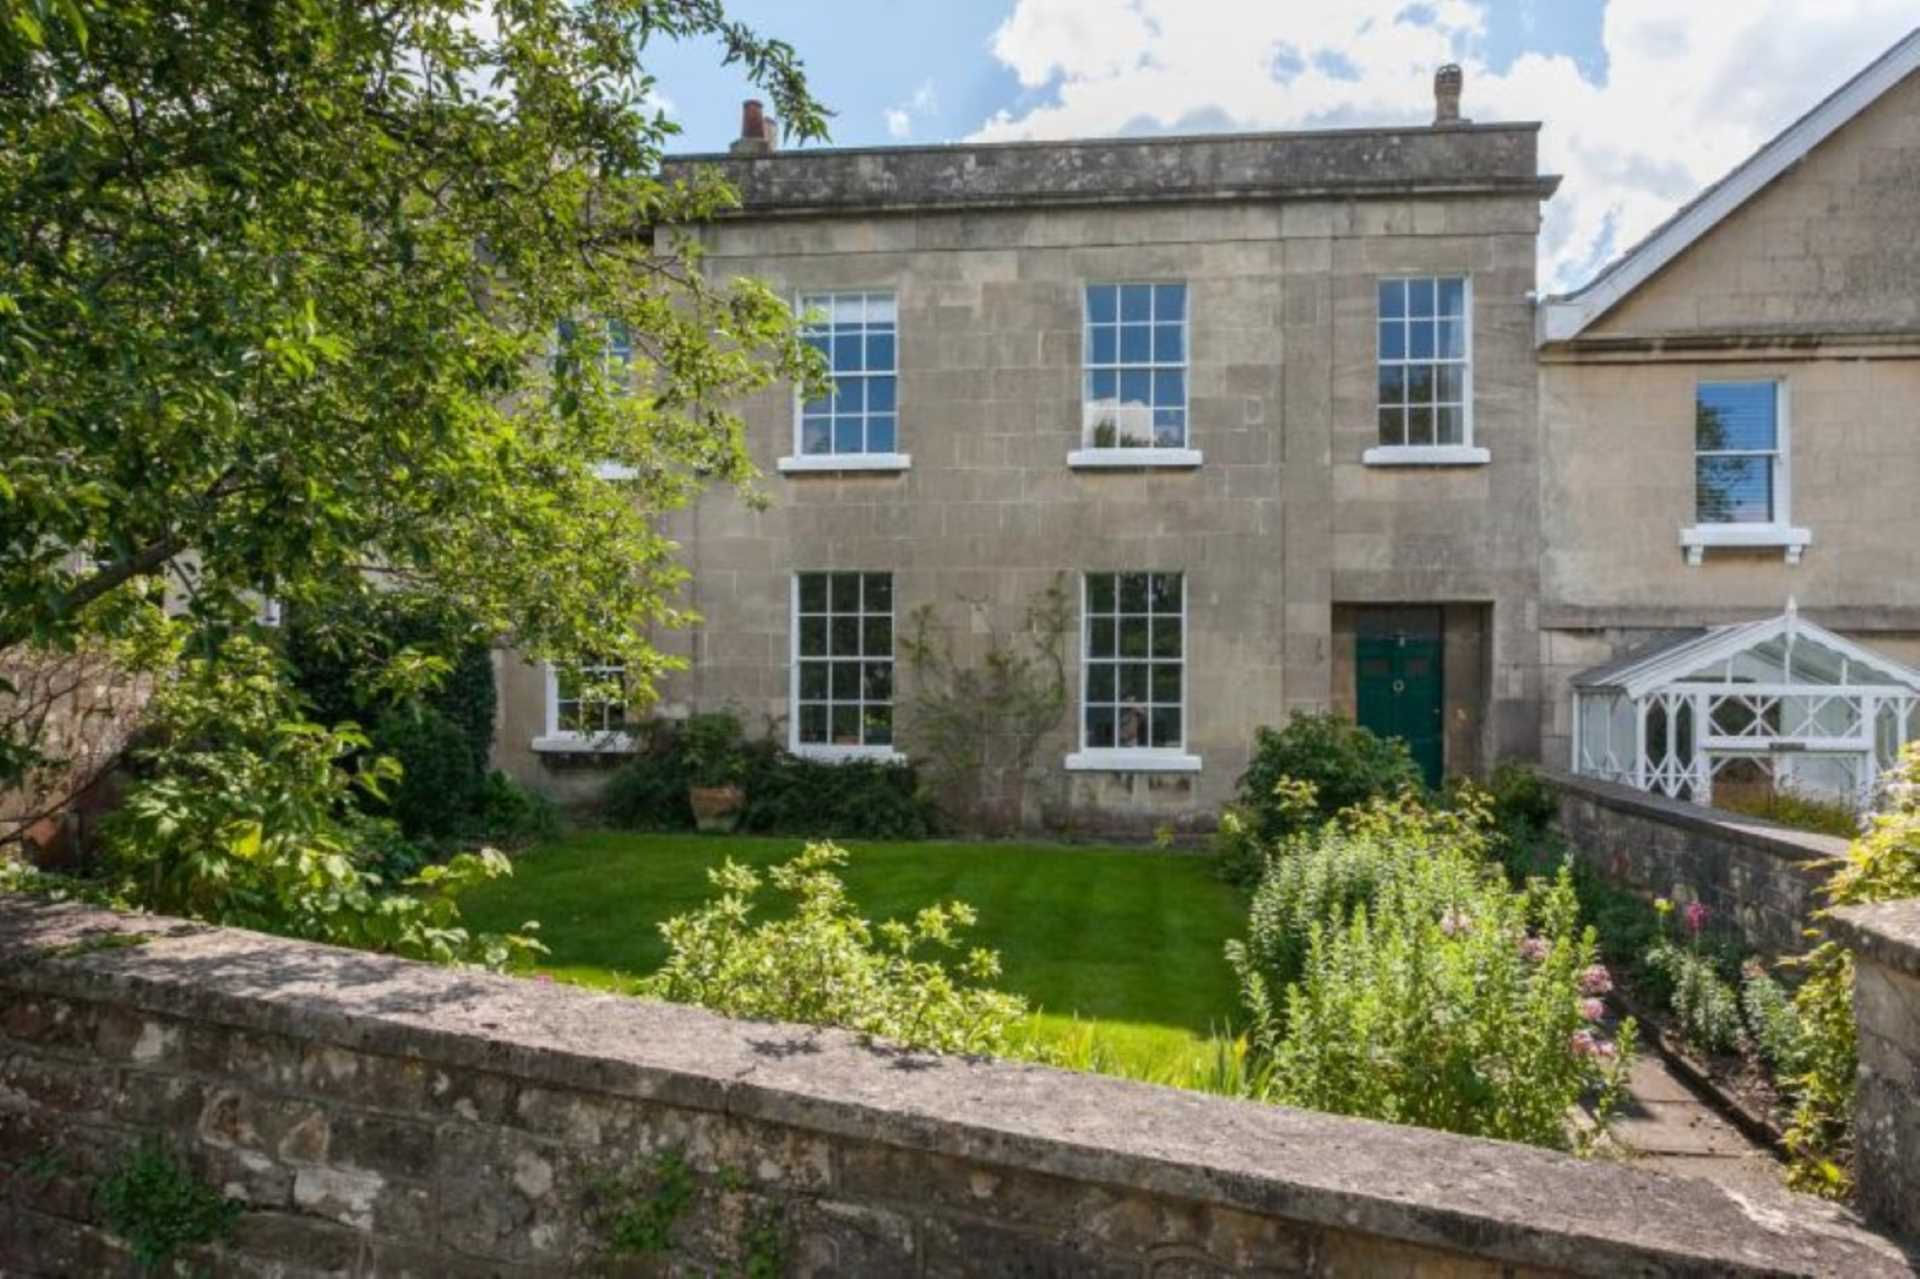 Swallows Property Letting - 4 Bedroom House, Beechen Cliff Road, Bath